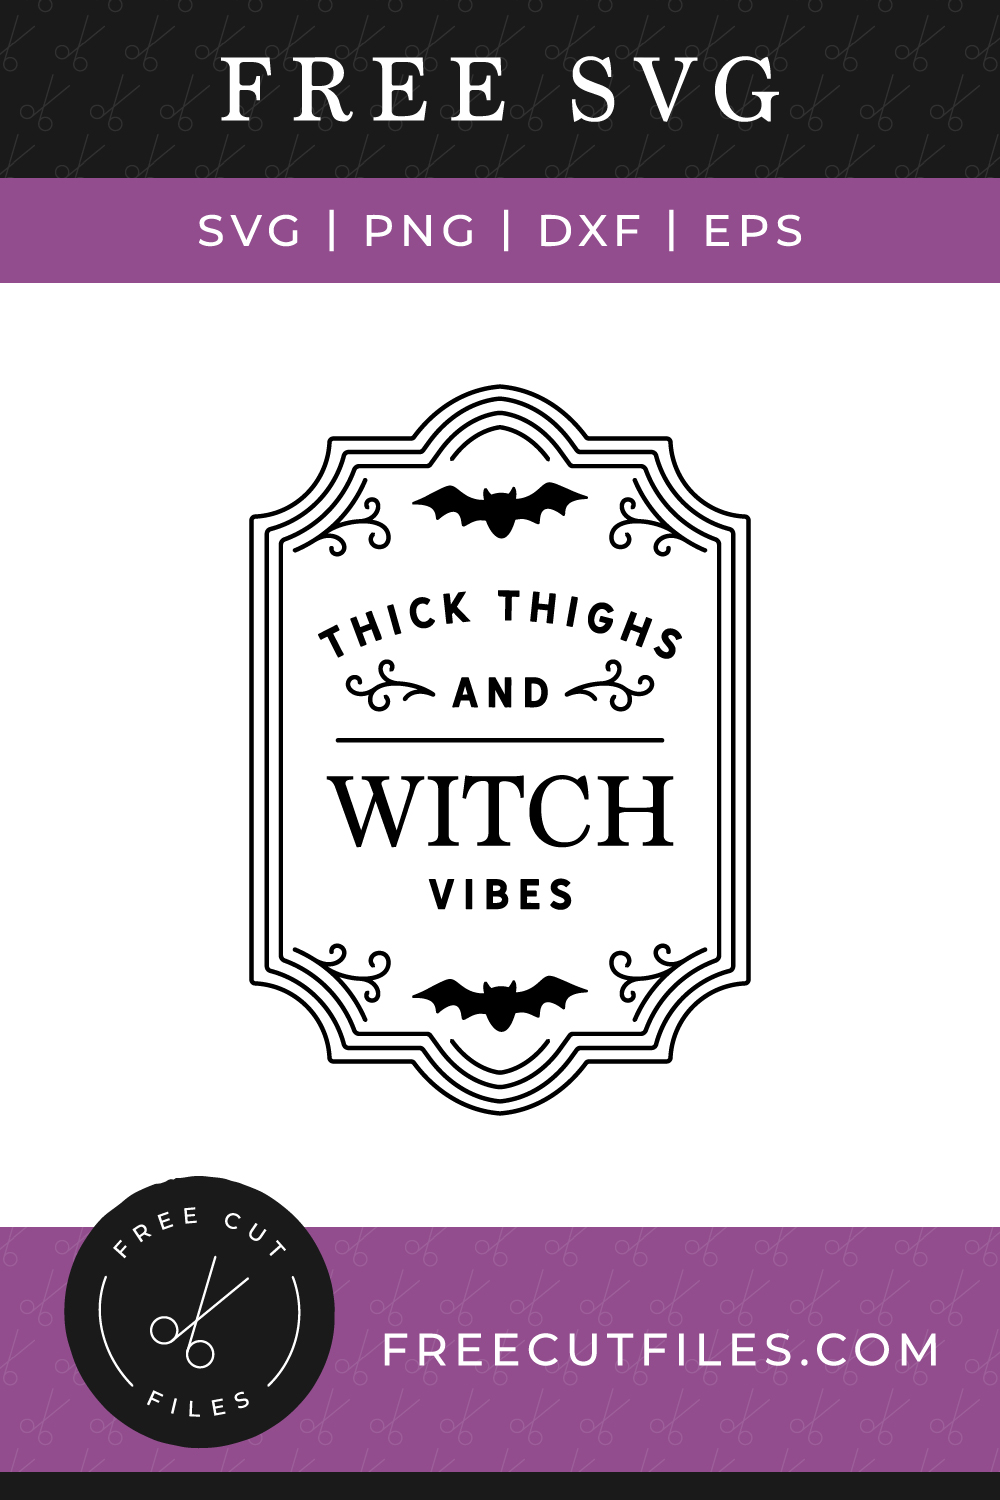 Thick thighs and witch vibes